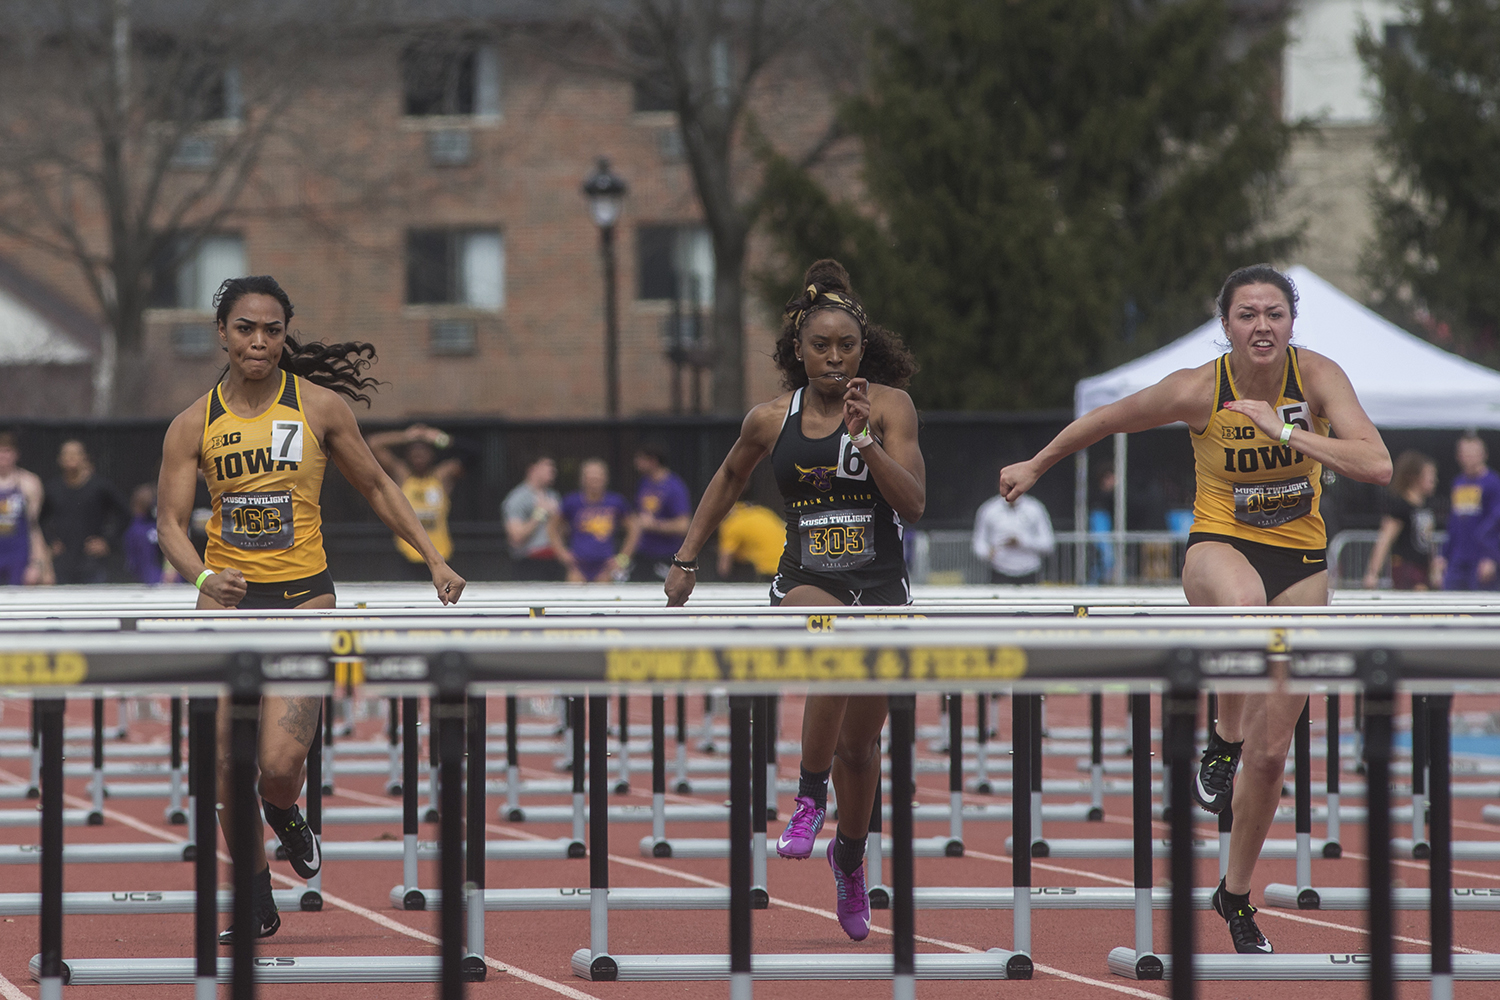 From left: Iowa's Tria Seawater-Simmons, Minnesota State's Alexis Smith, and Iowa's Jenny Kimbro compete in the women's 100 meter hurdles during the 19th annual Musco Twilight meet at the Francis X. Cretzmeyer Track in Iowa City on Thursday, April 12. Kimbro finished first with the time of 13.77.